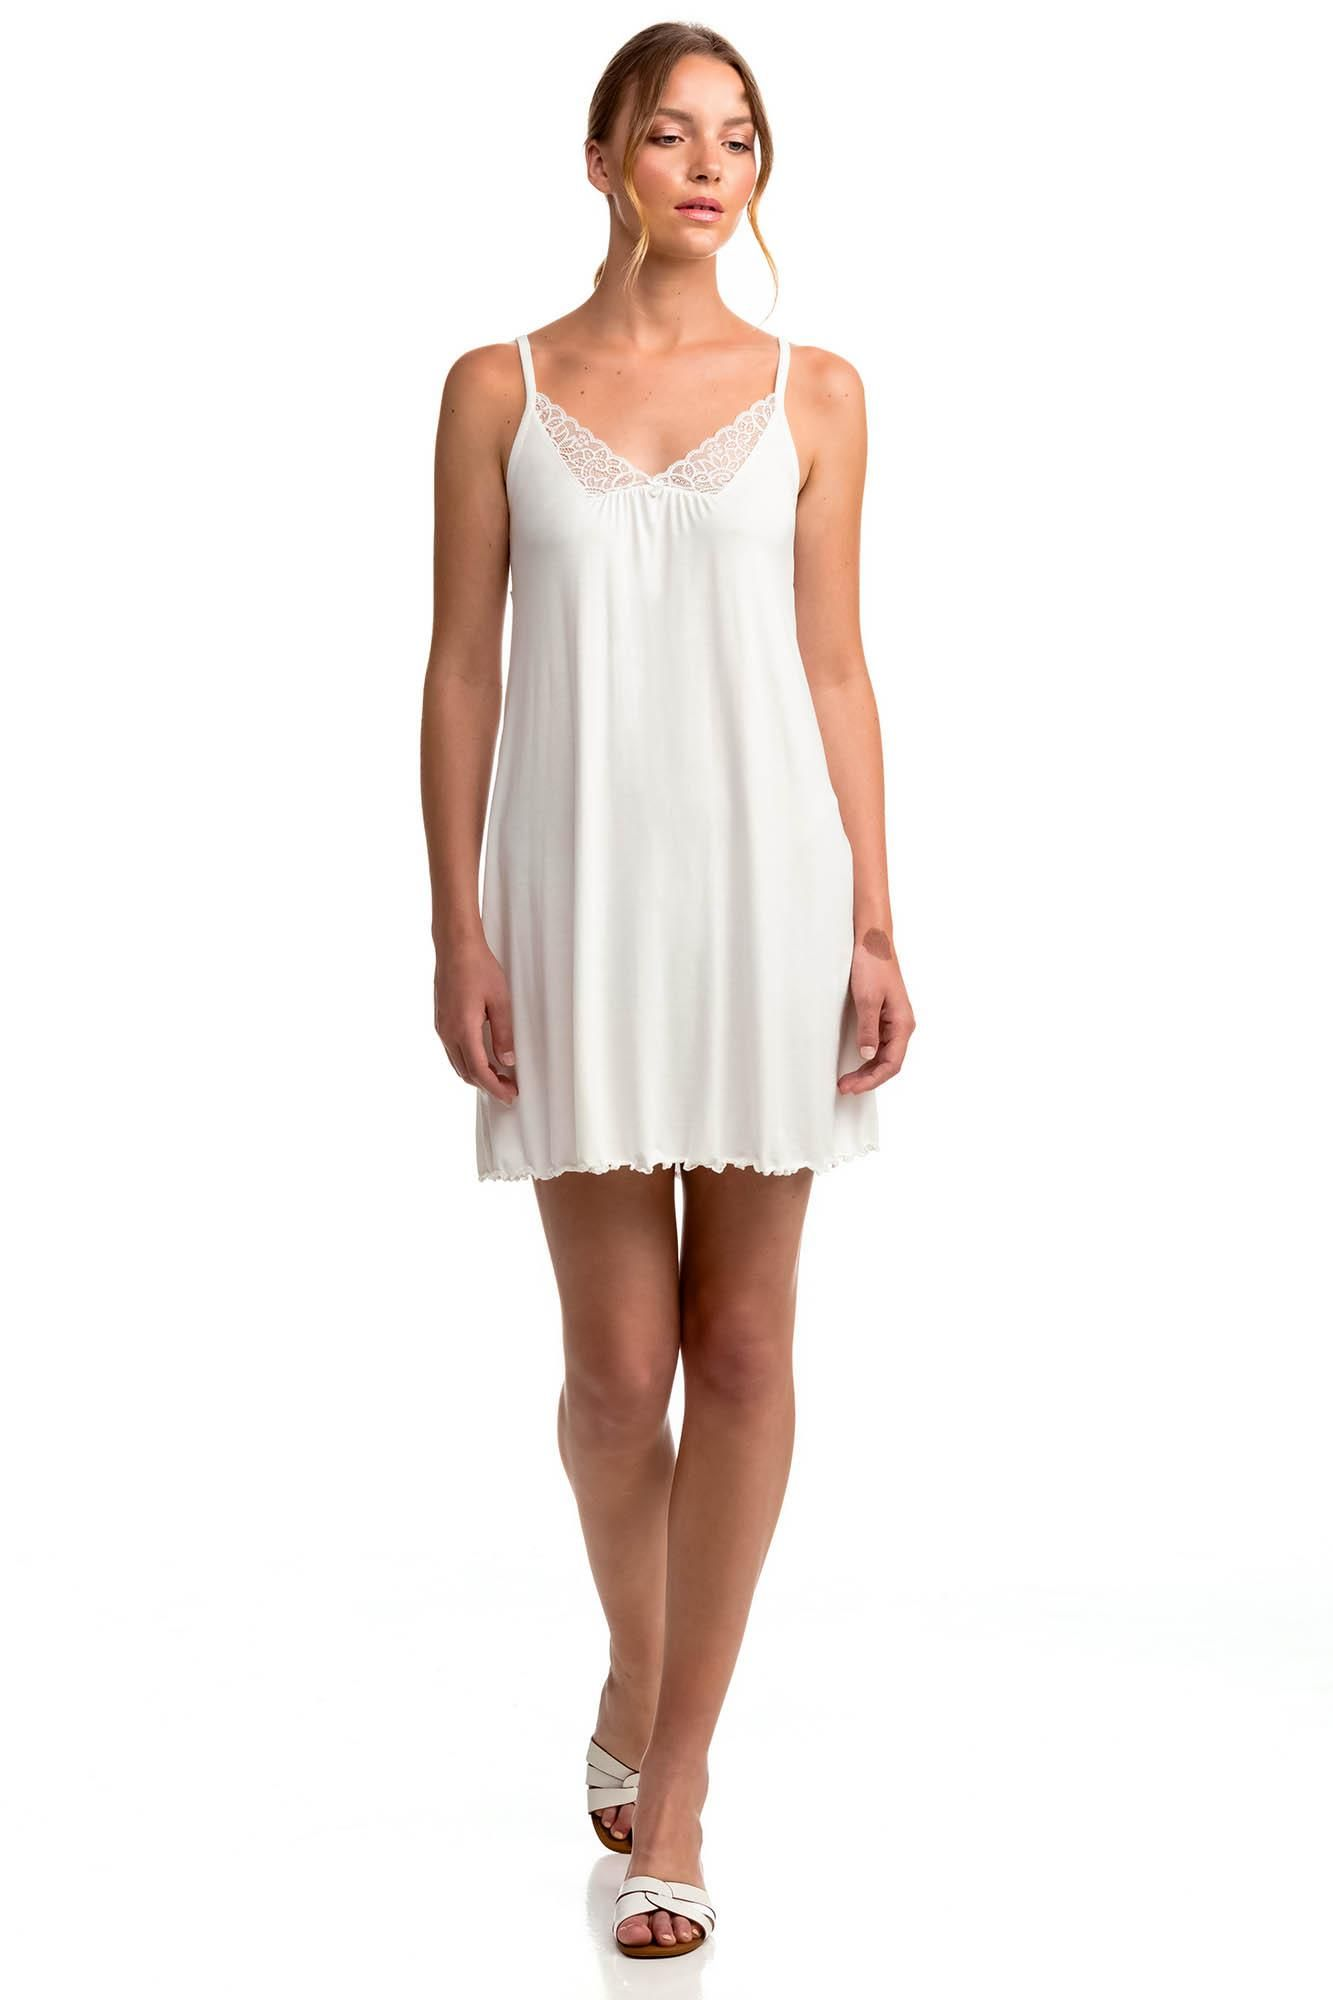 Bridal Nightgown and Robe Set